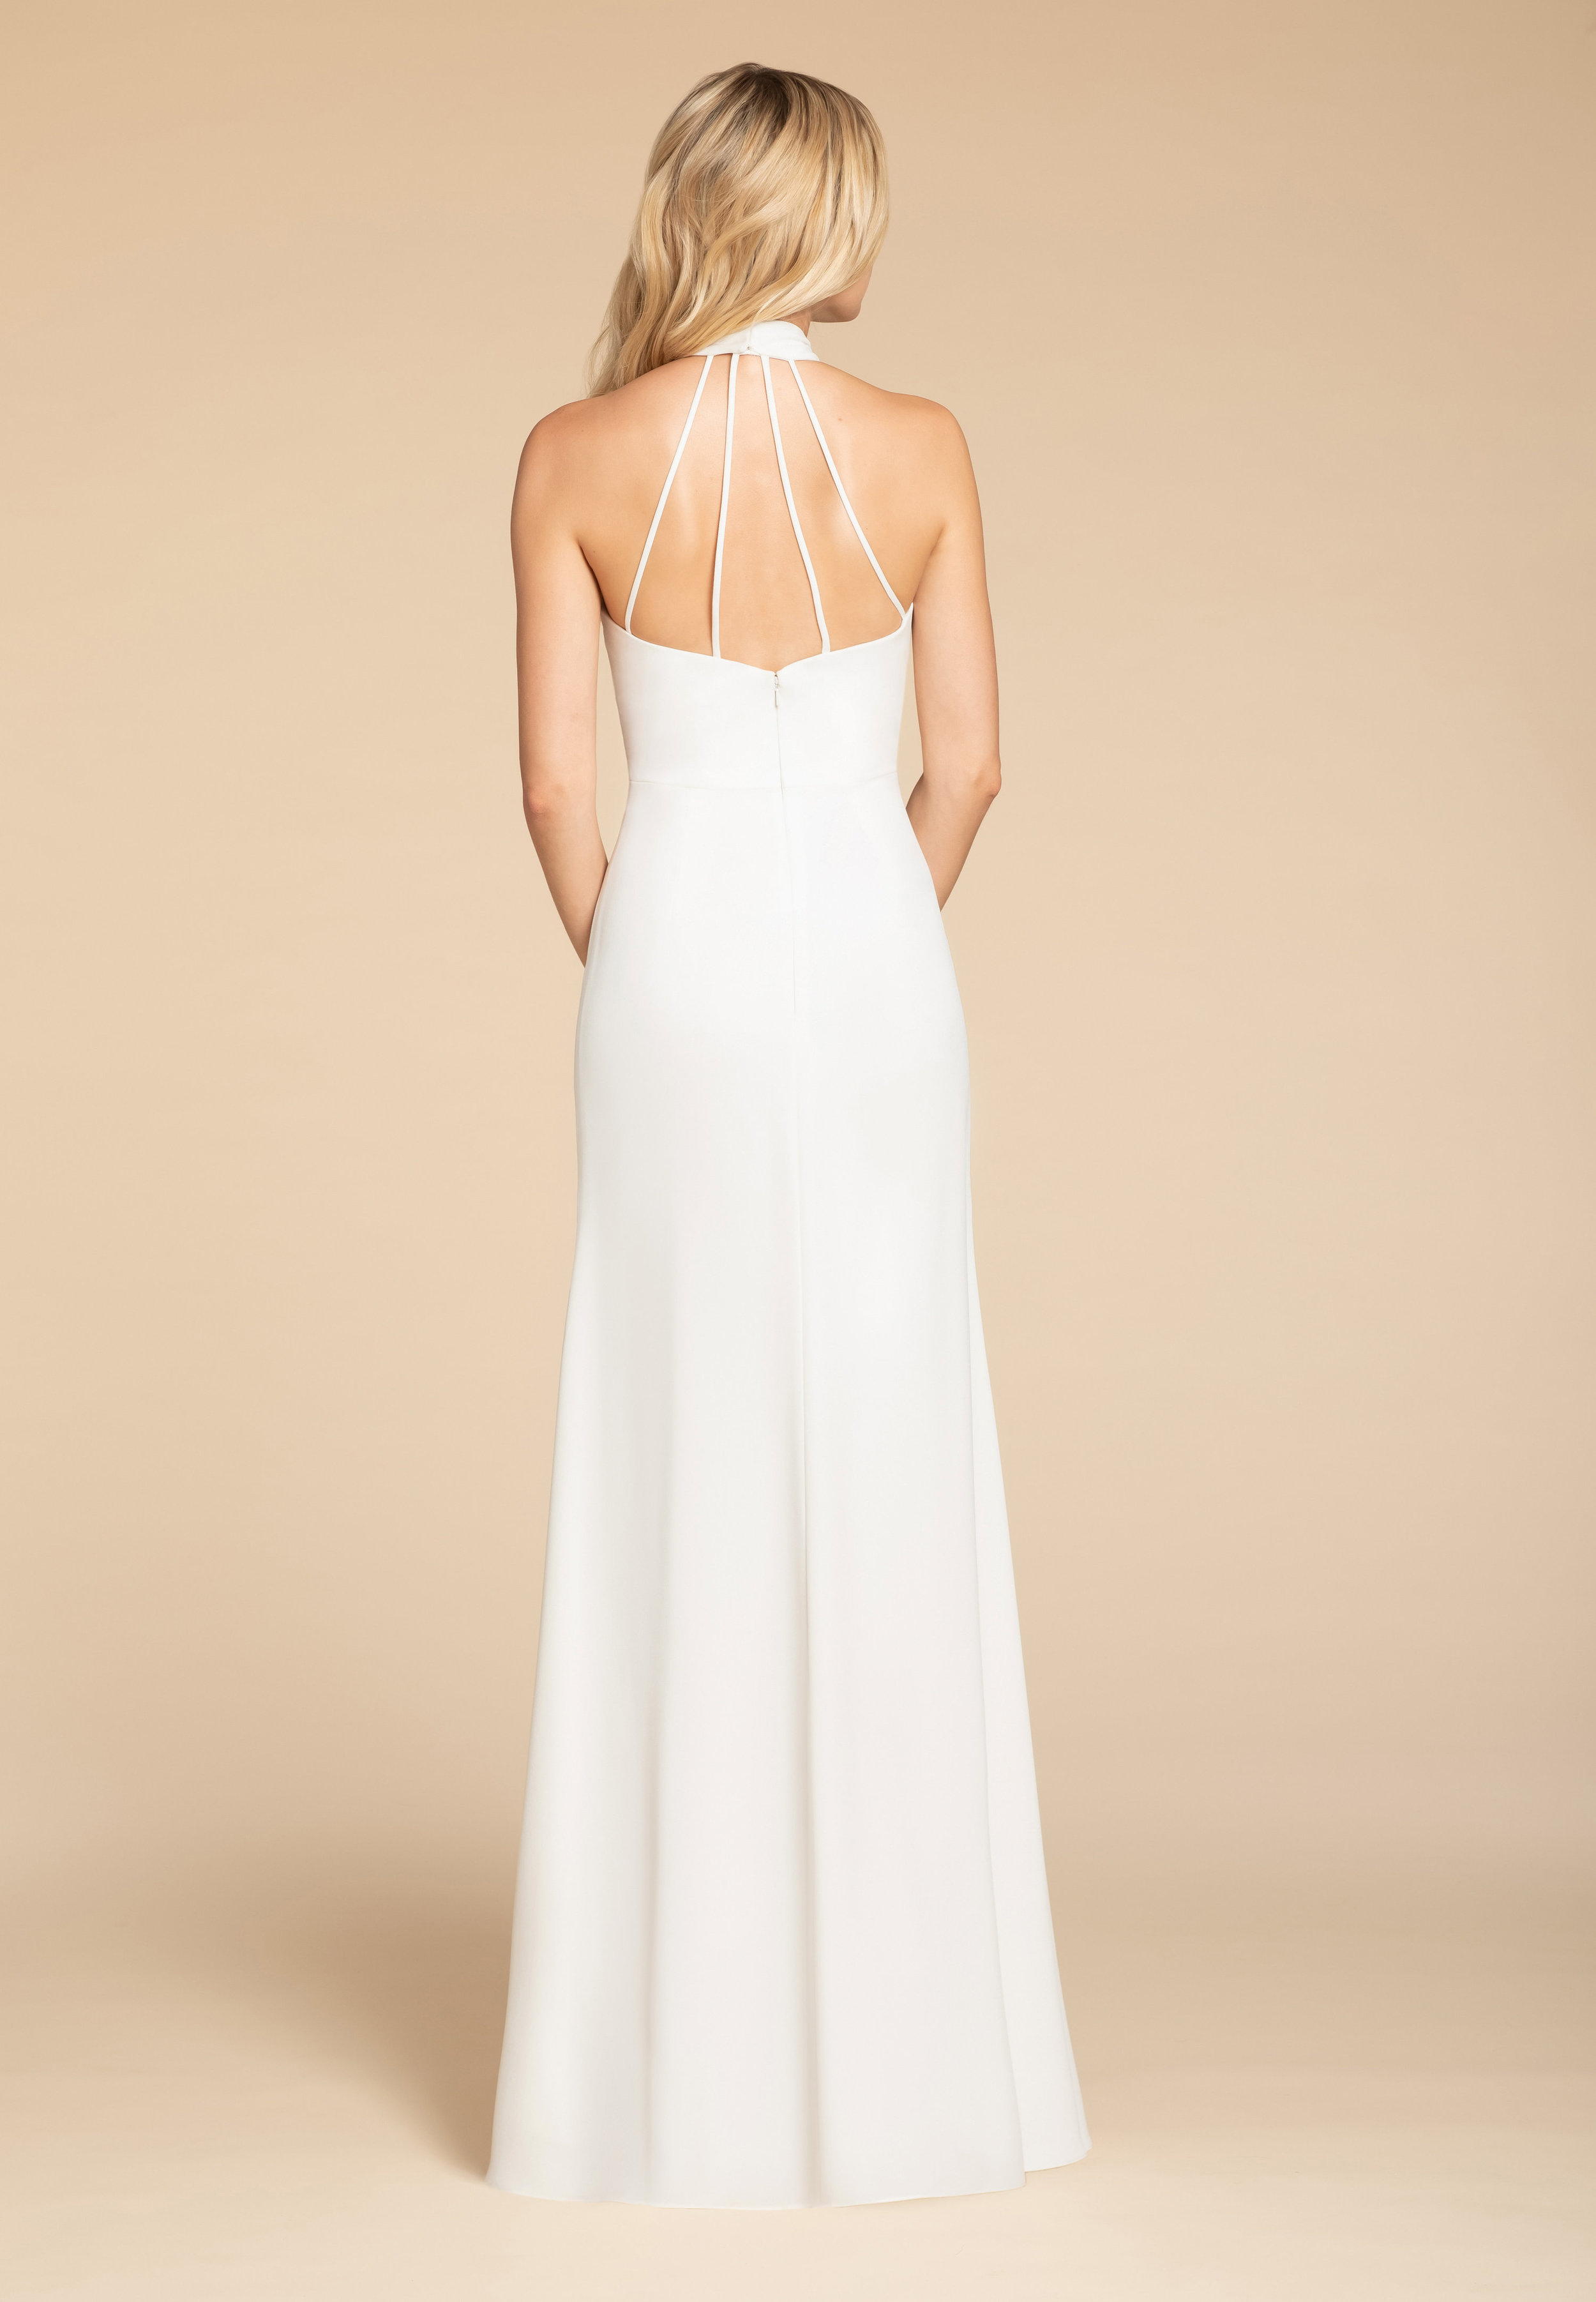 Four strap detail of Meghan Markle inspired bridesmaid dress by Hayley Paige Occasions